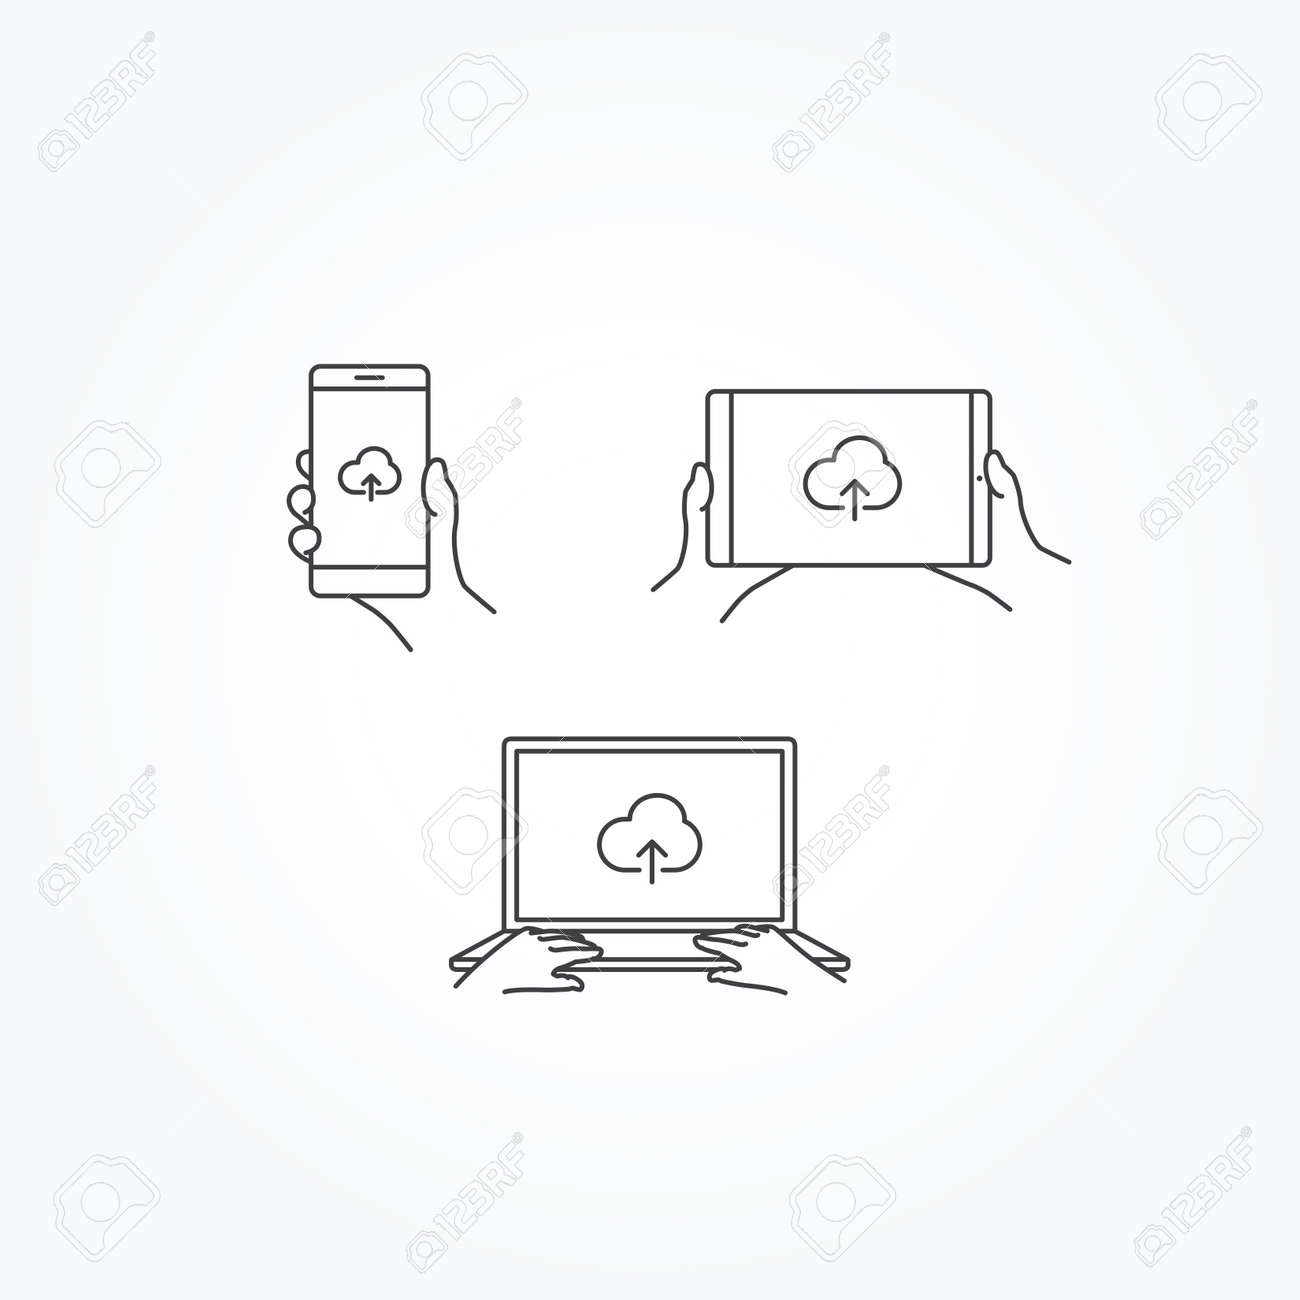 cloud upload icon on phone tablet laptop royalty free cliparts